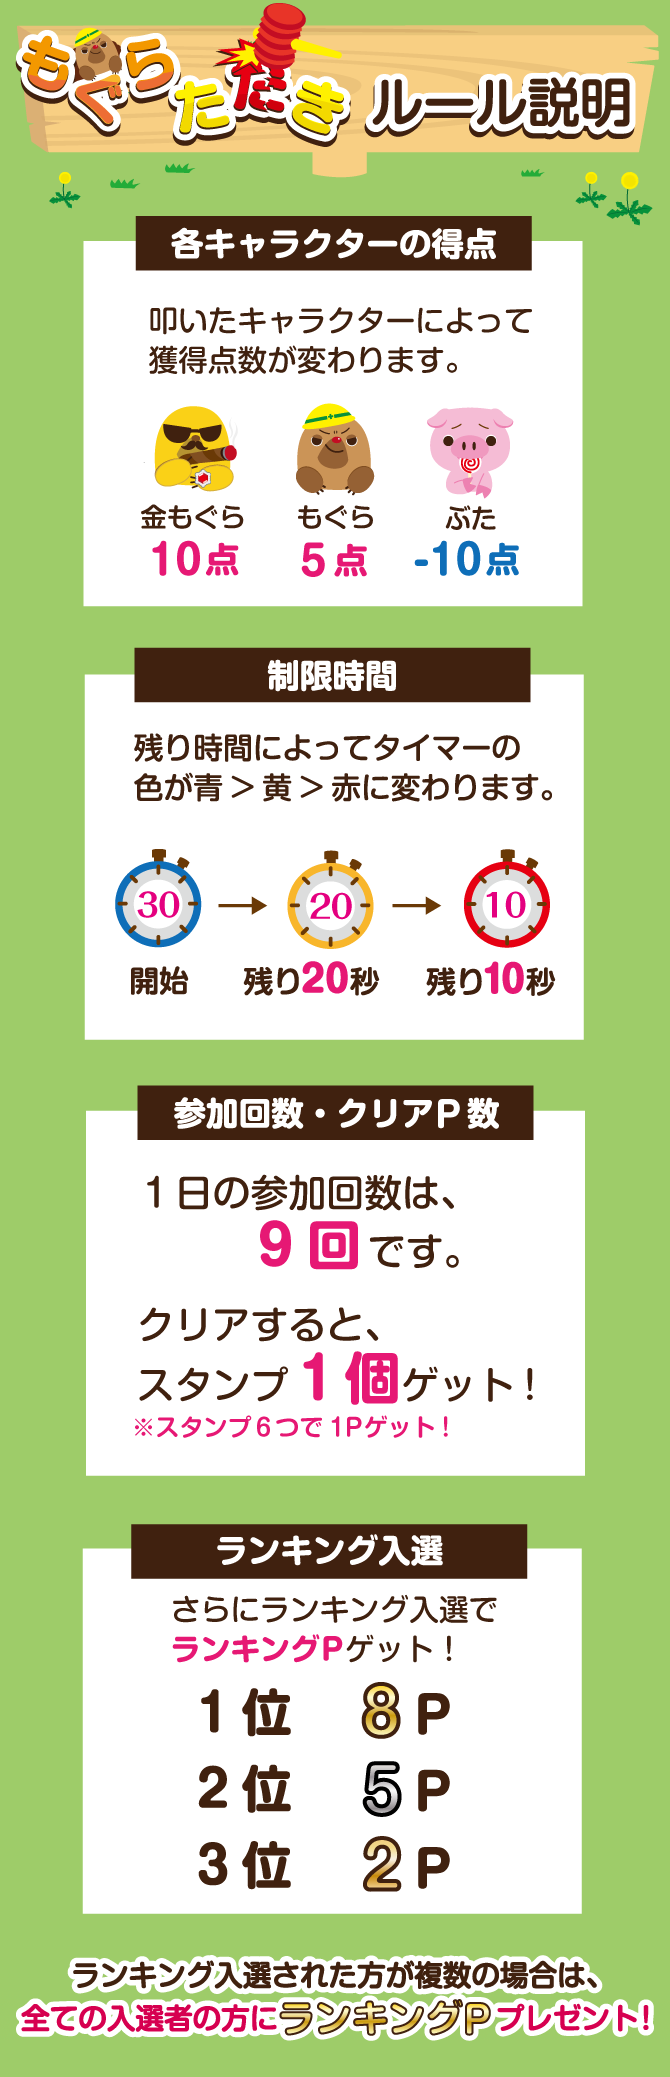 201501201930453b2.png